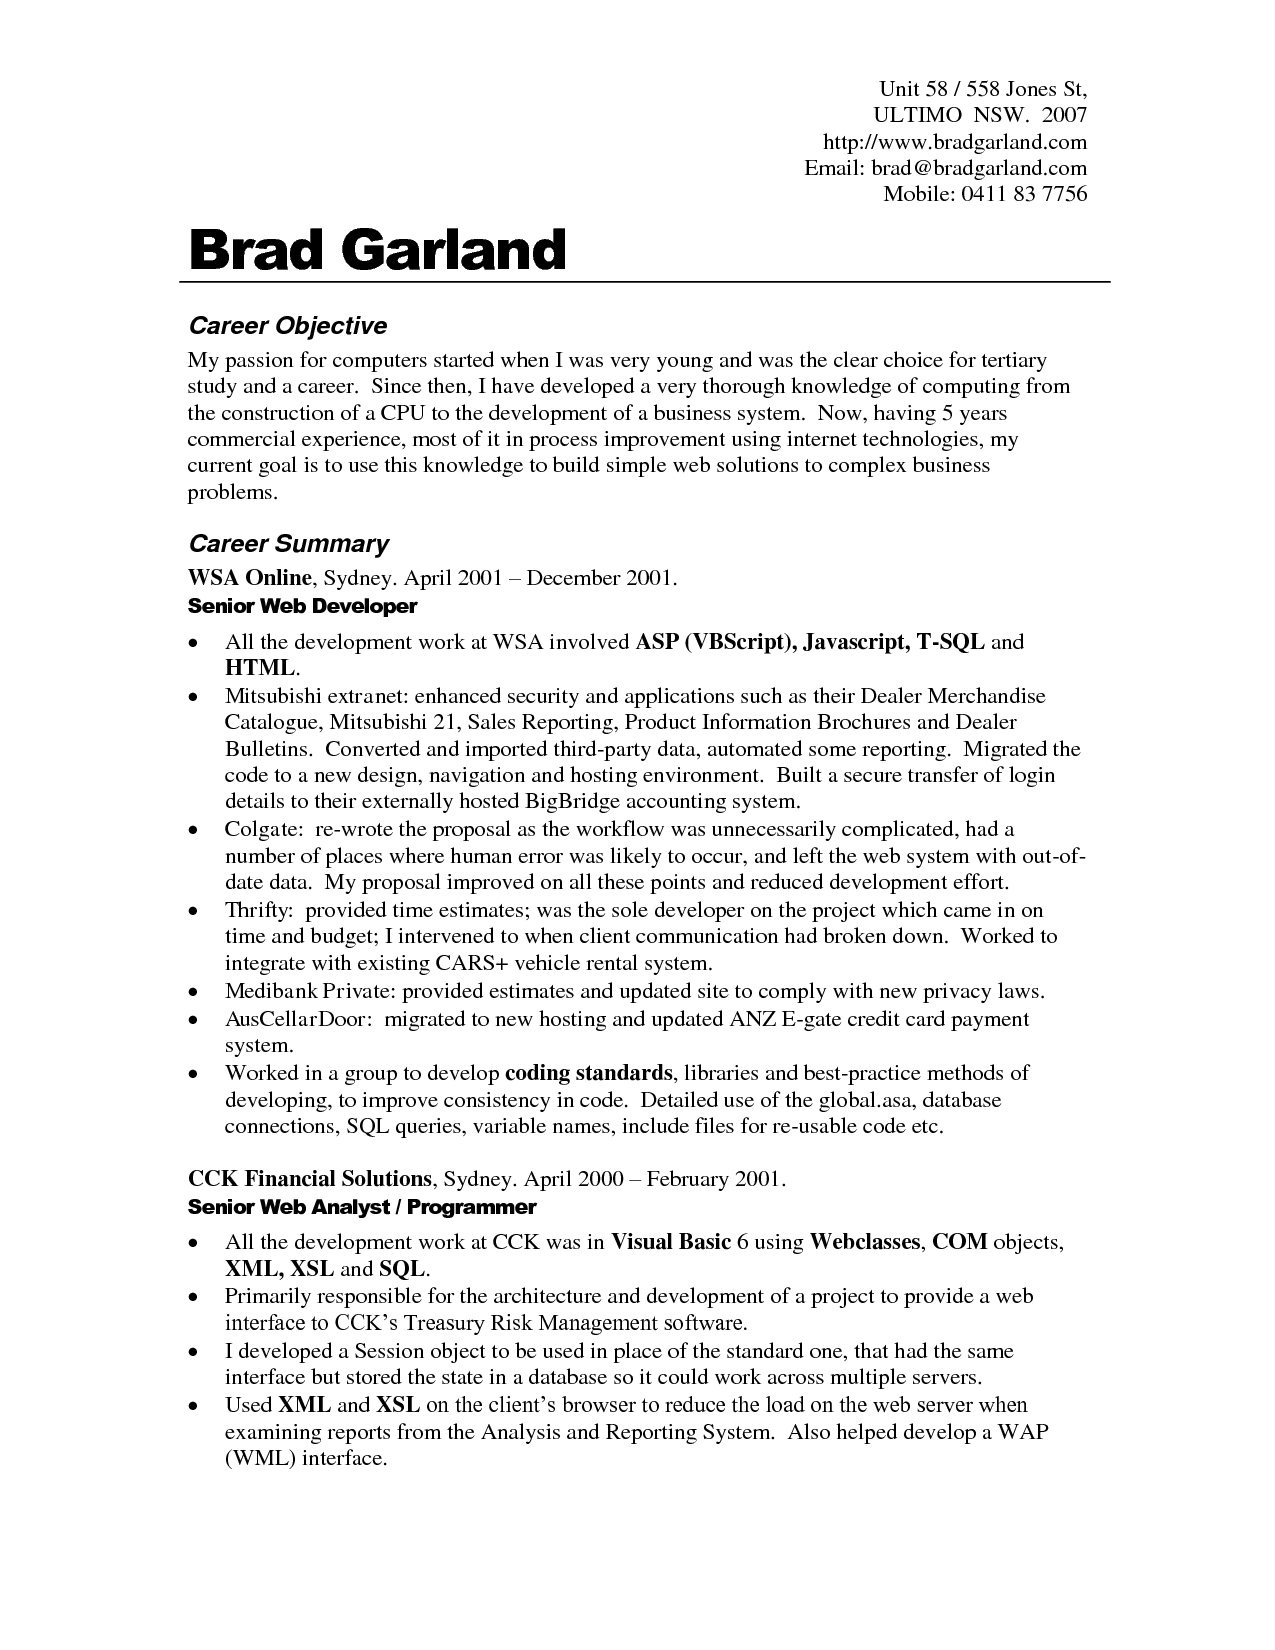 Resume Objectives Examples Best TemplateResume Objective